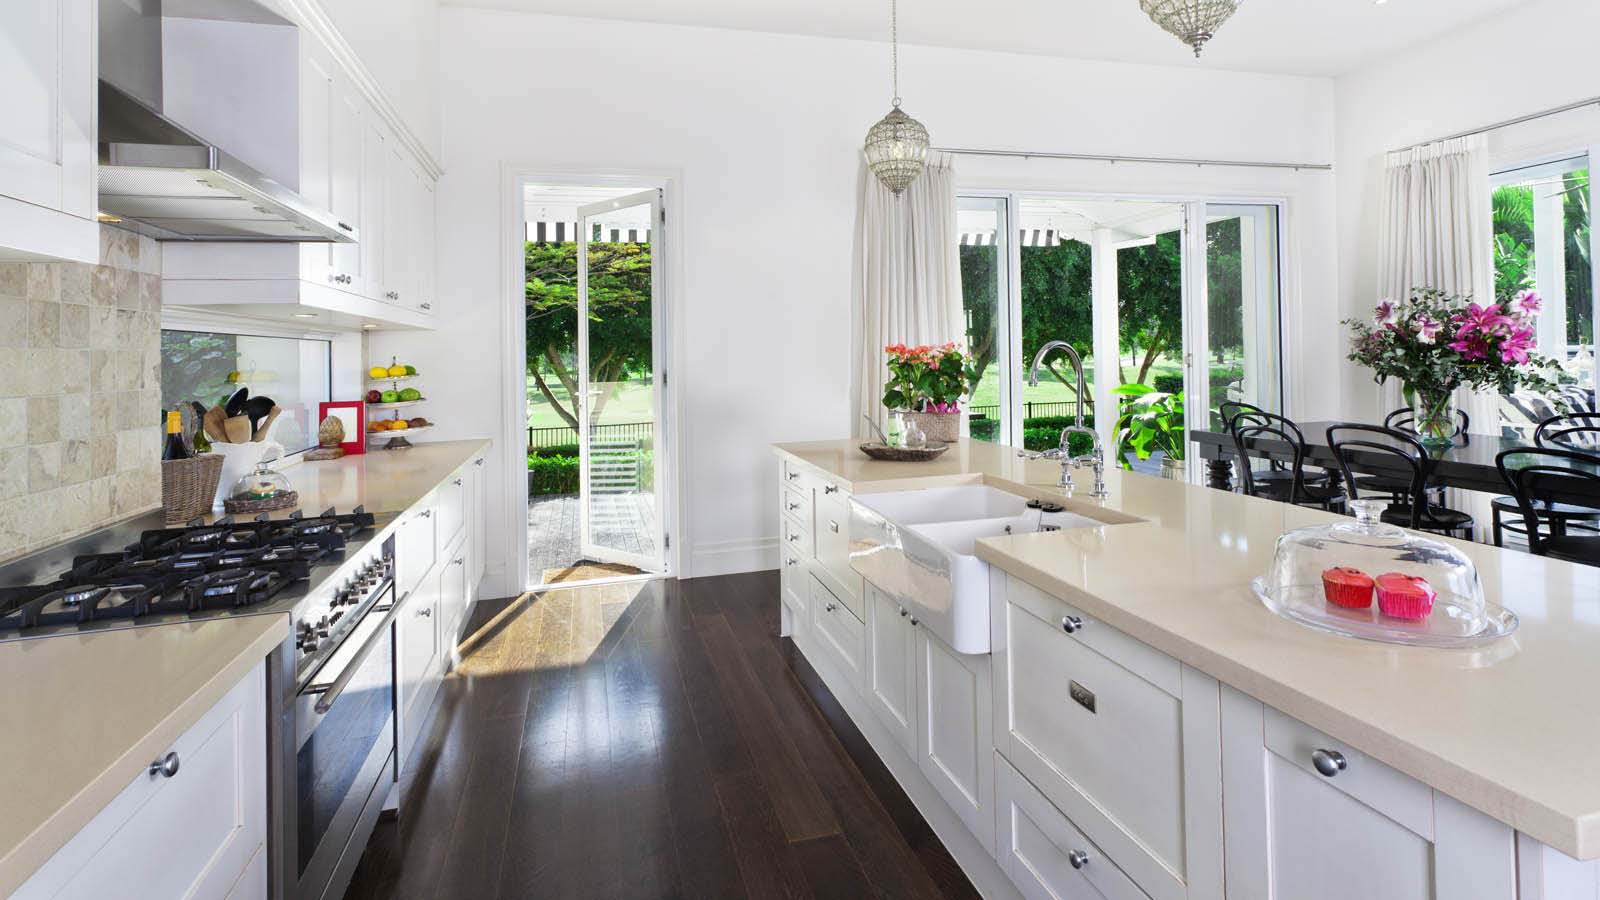 Amy's Cleaning LLC - maid service - Auburn, WA - kitchen cleaning - clean kitchen - kitchen cleaned - wipe down counter tops - house cleaning